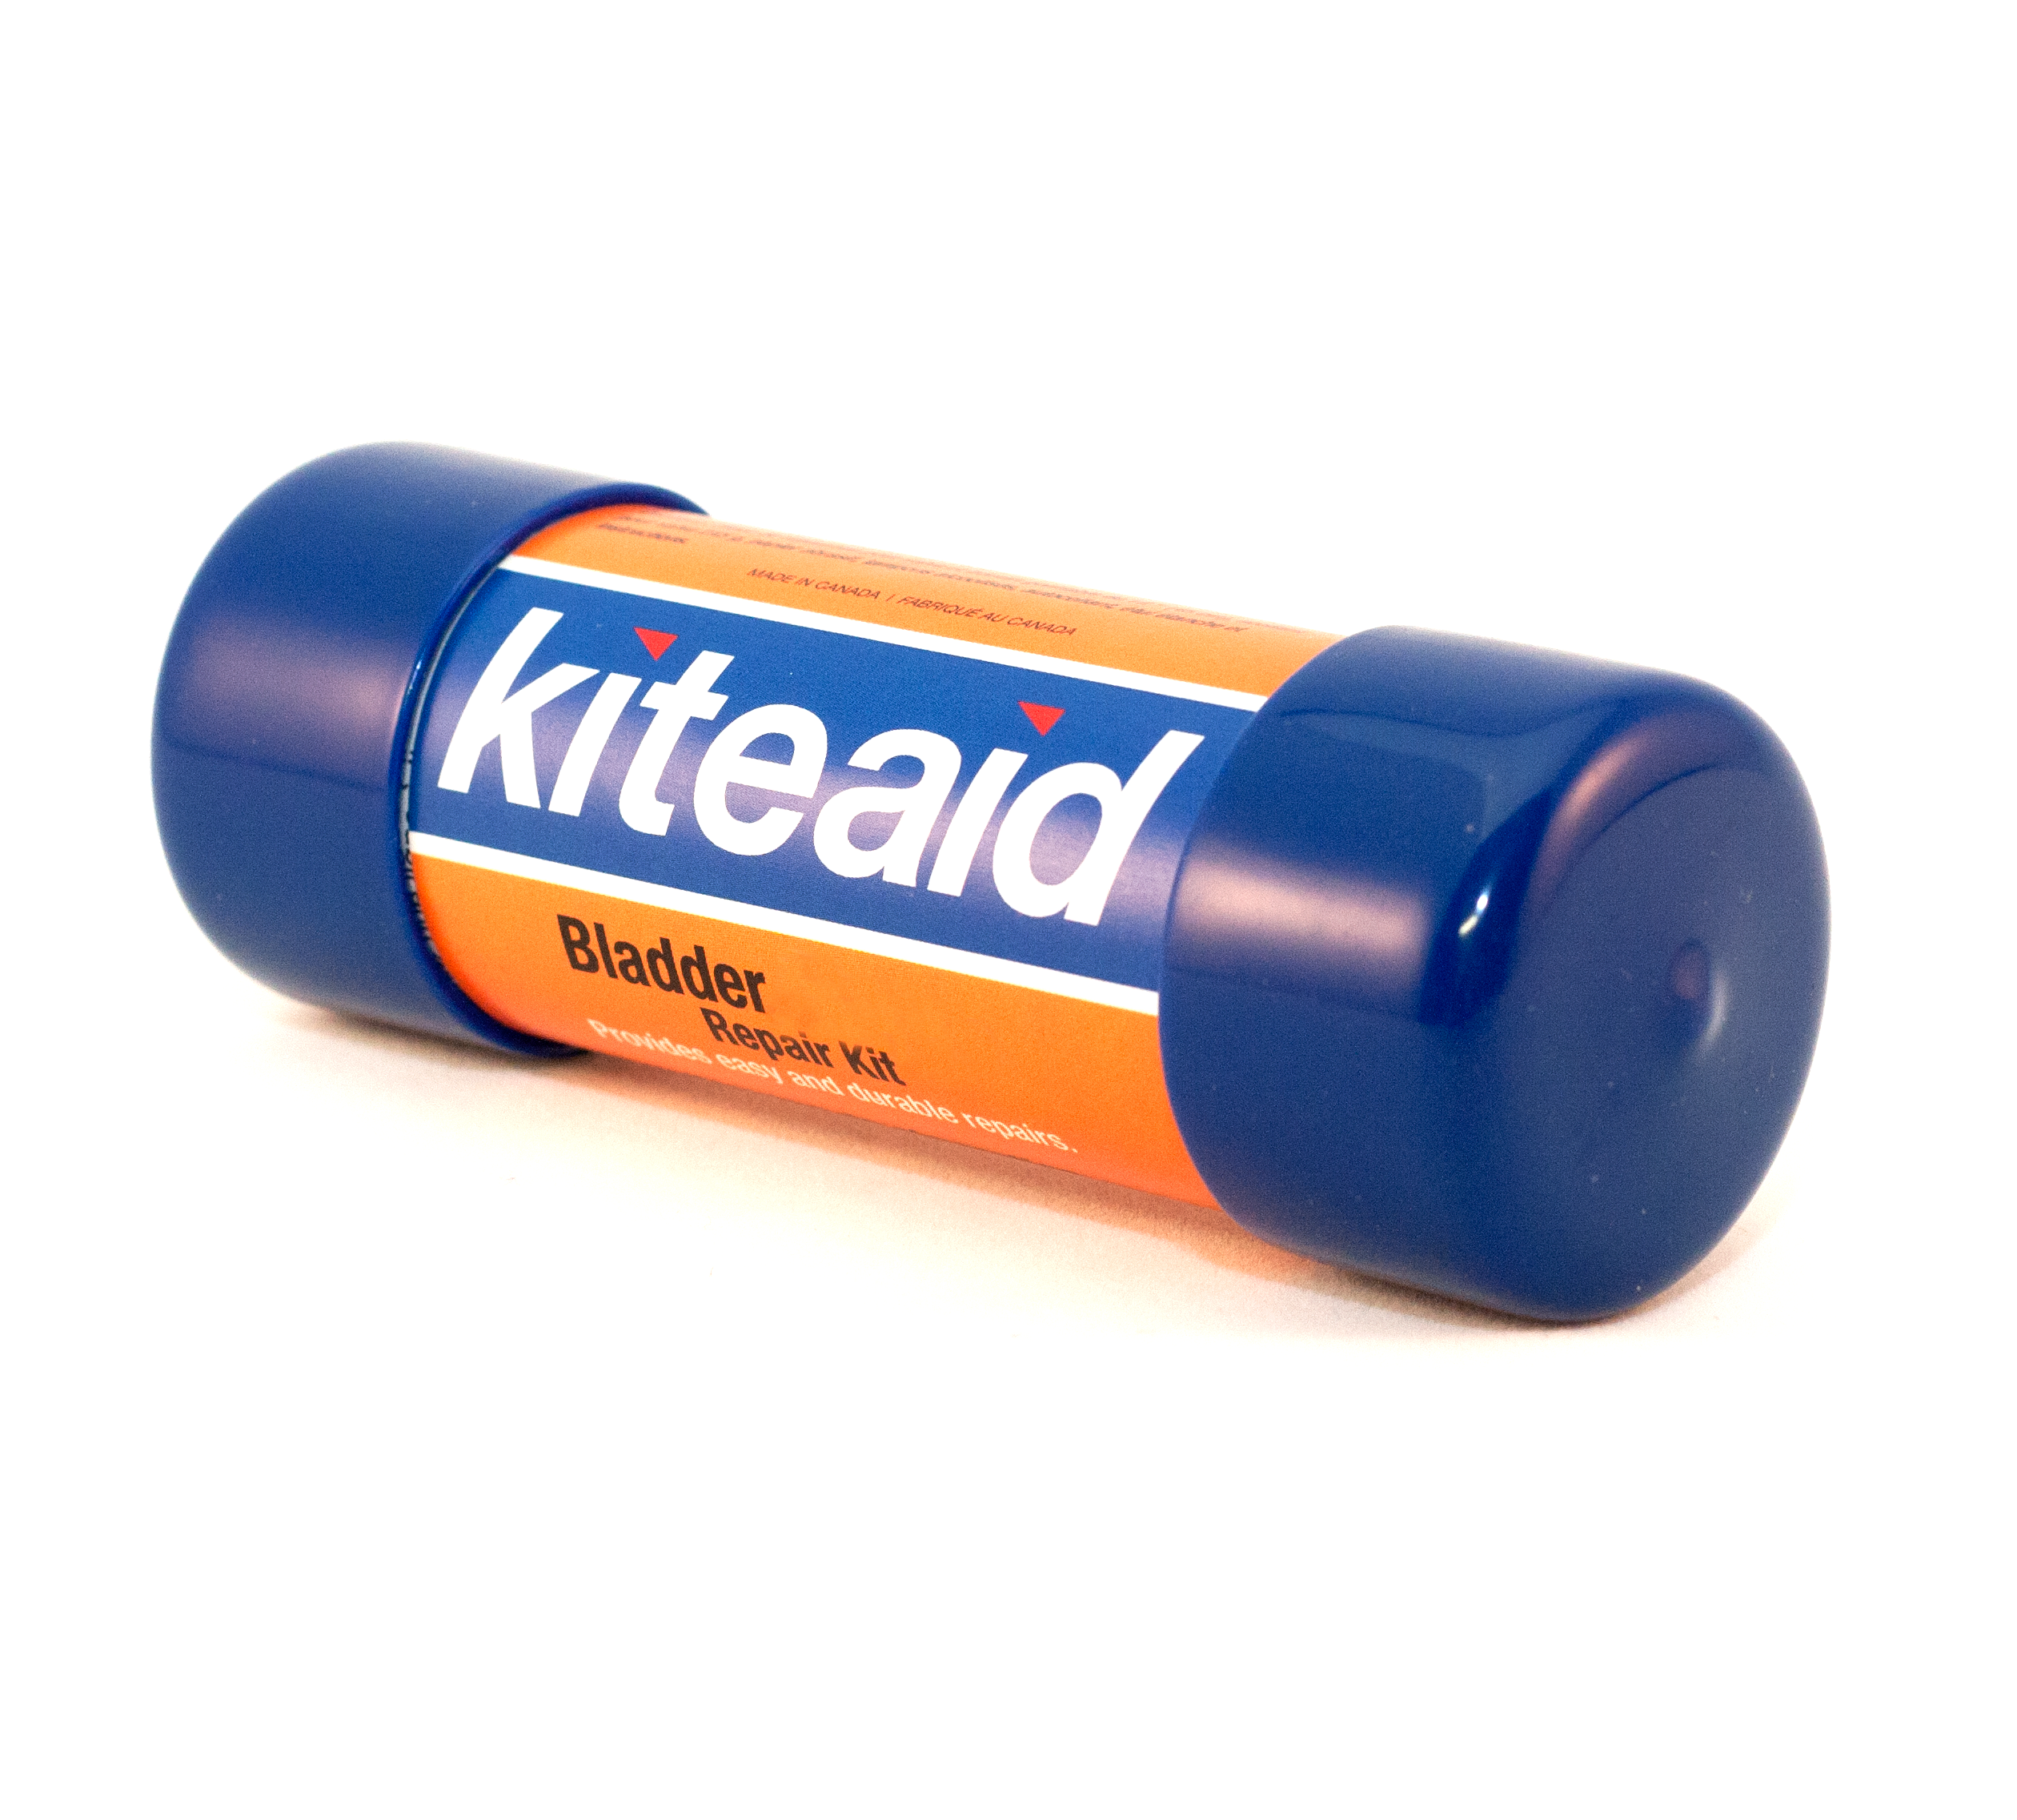 KITEAID-BLADDER-REPAIR-KIT-FRONT-VIEW_cropped.png